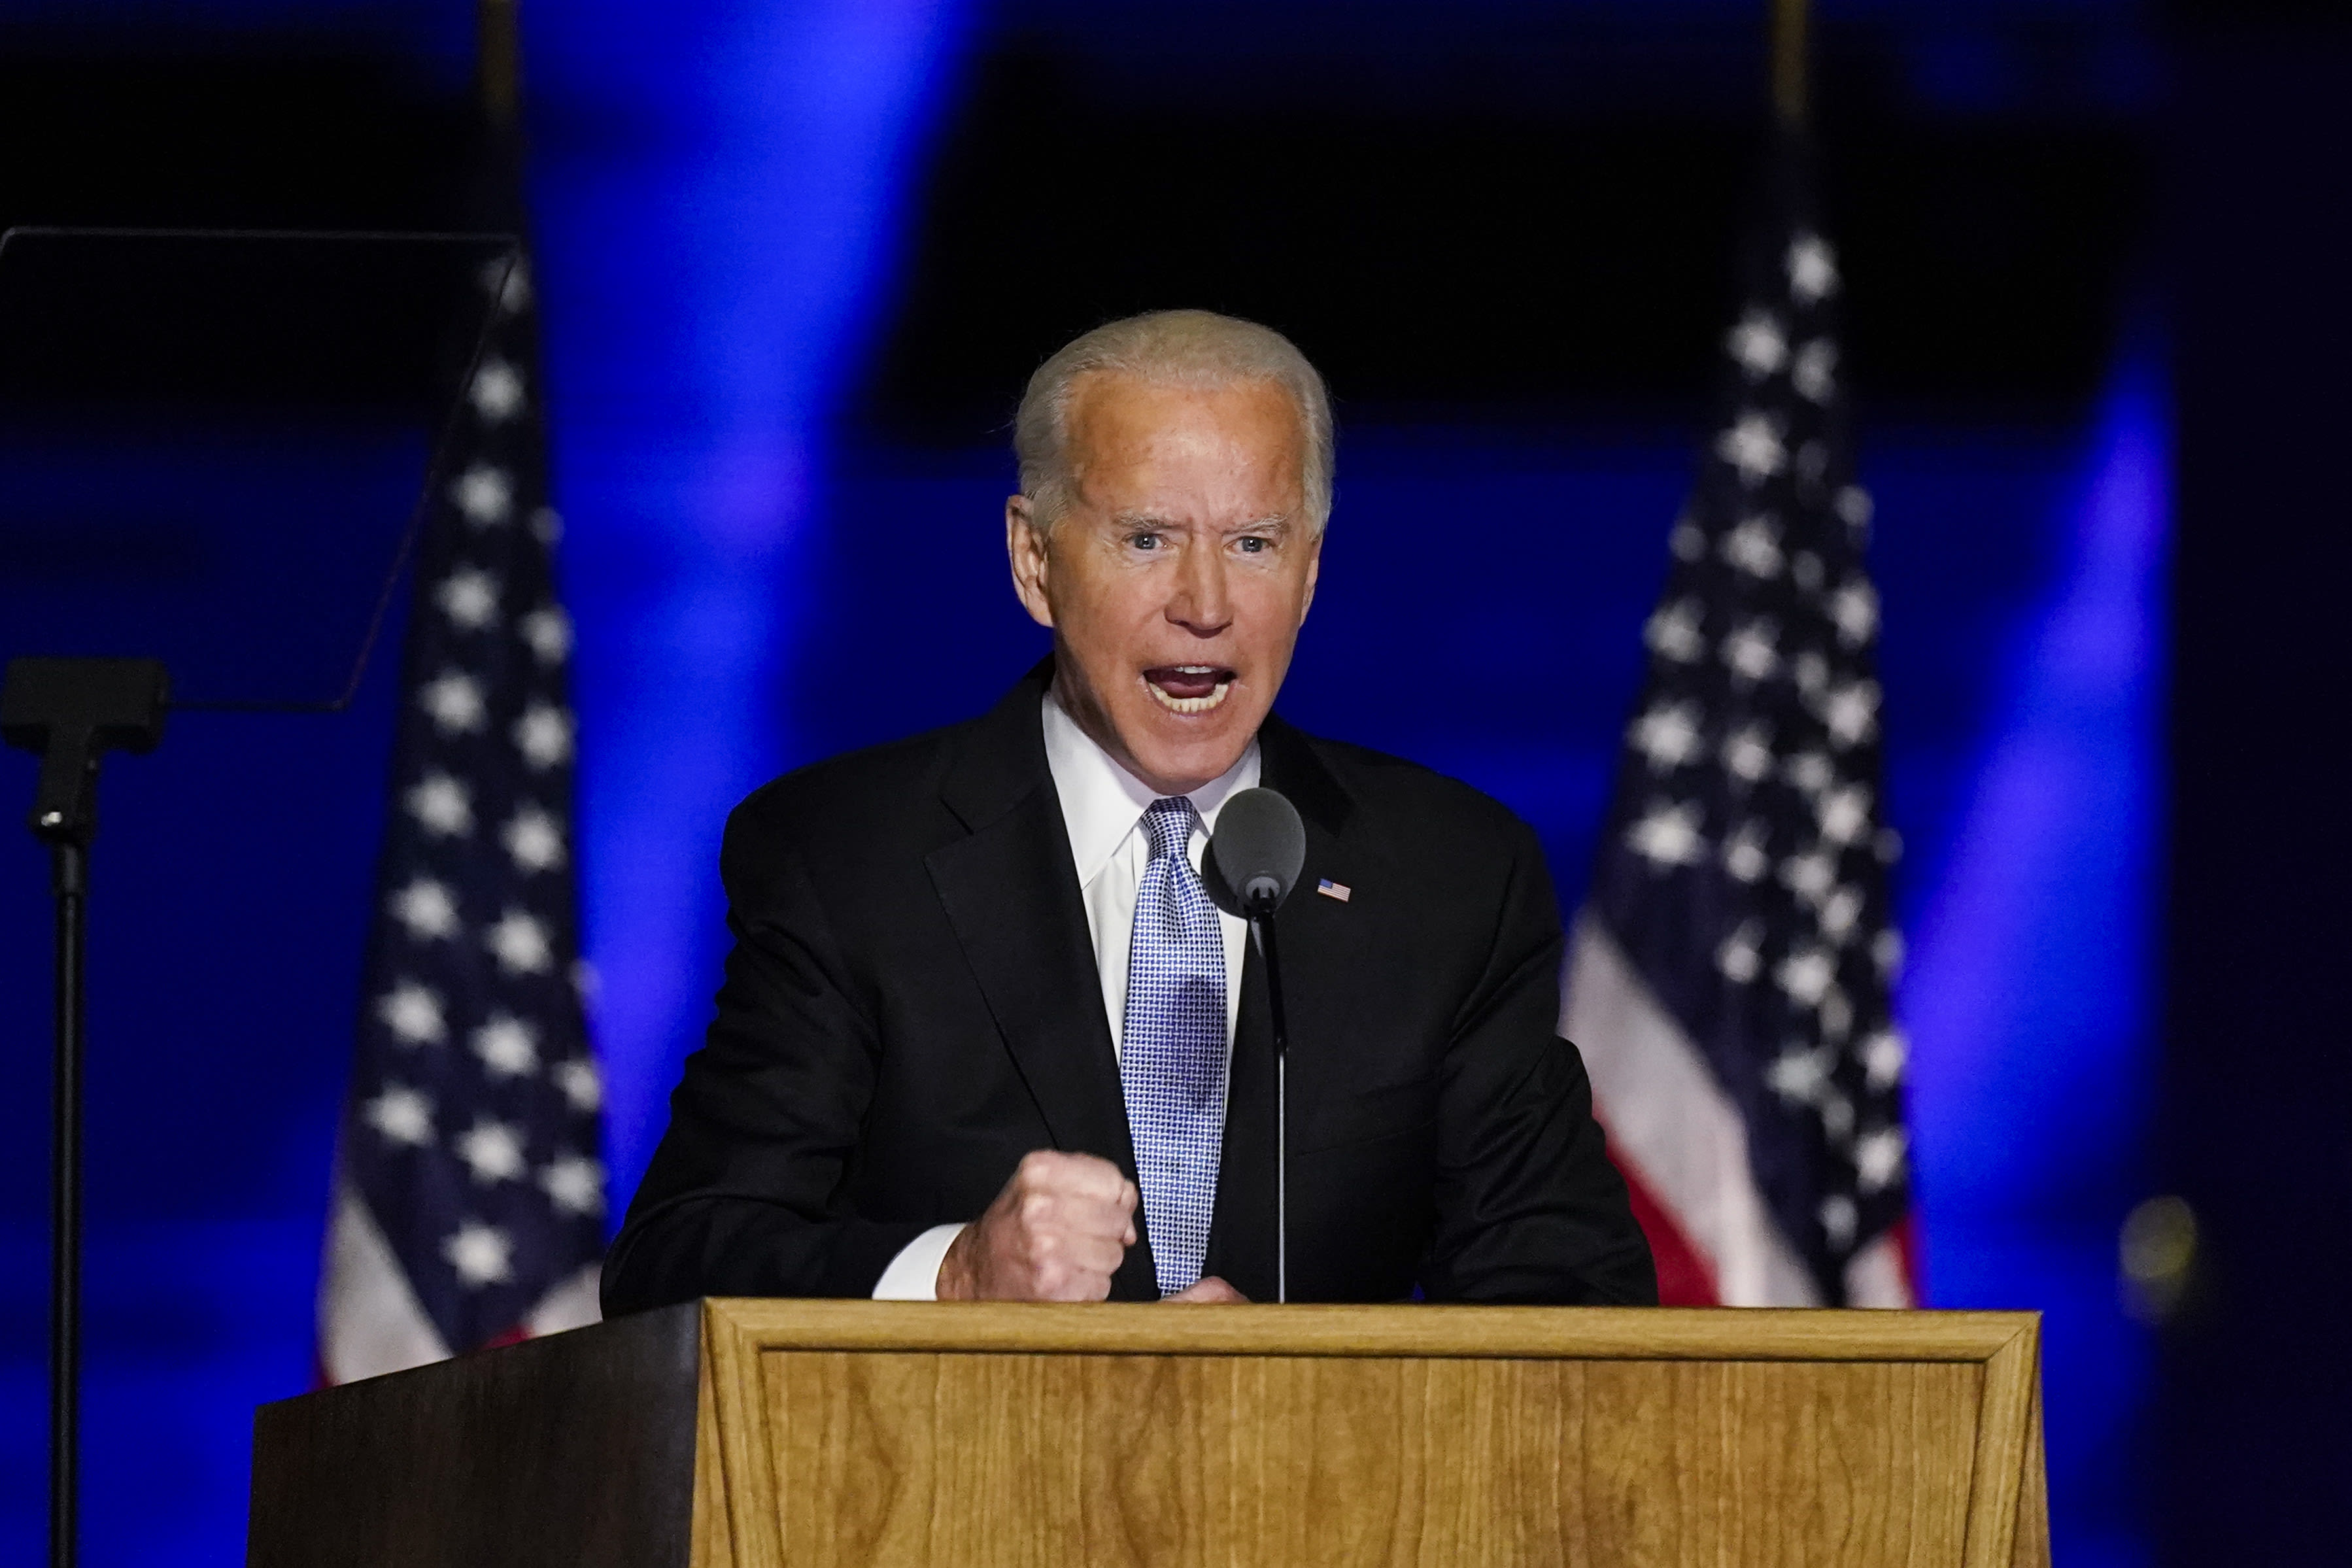 WATCH: Joe Biden pledges to unify America as president, says work begins to bring COVID-19 under control | Video